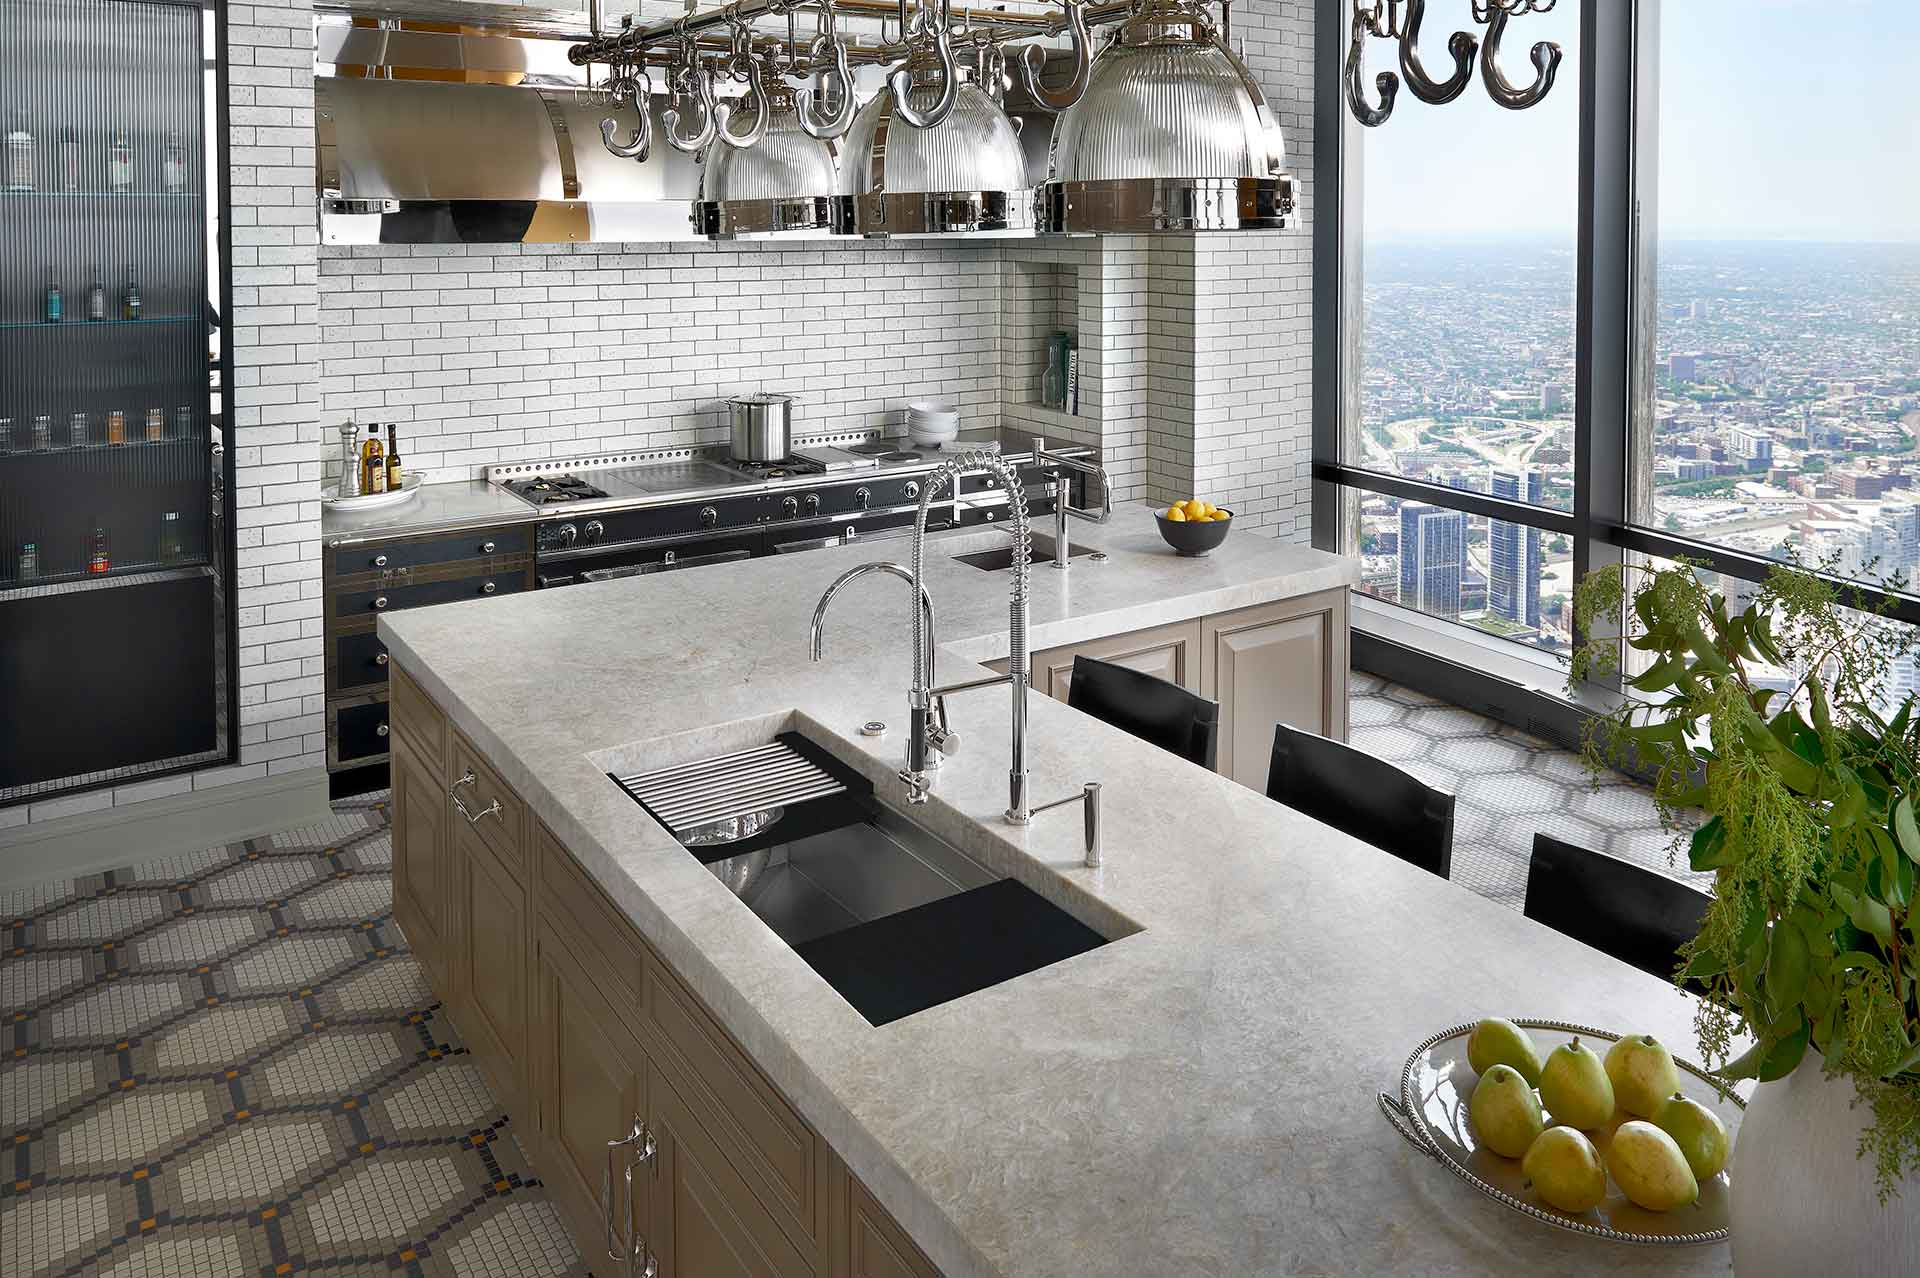 IWS-4-stainless-steel-kitchen-sink-graphite-wood-composite-culinary-kit-trump-tower-high-rise-chicago